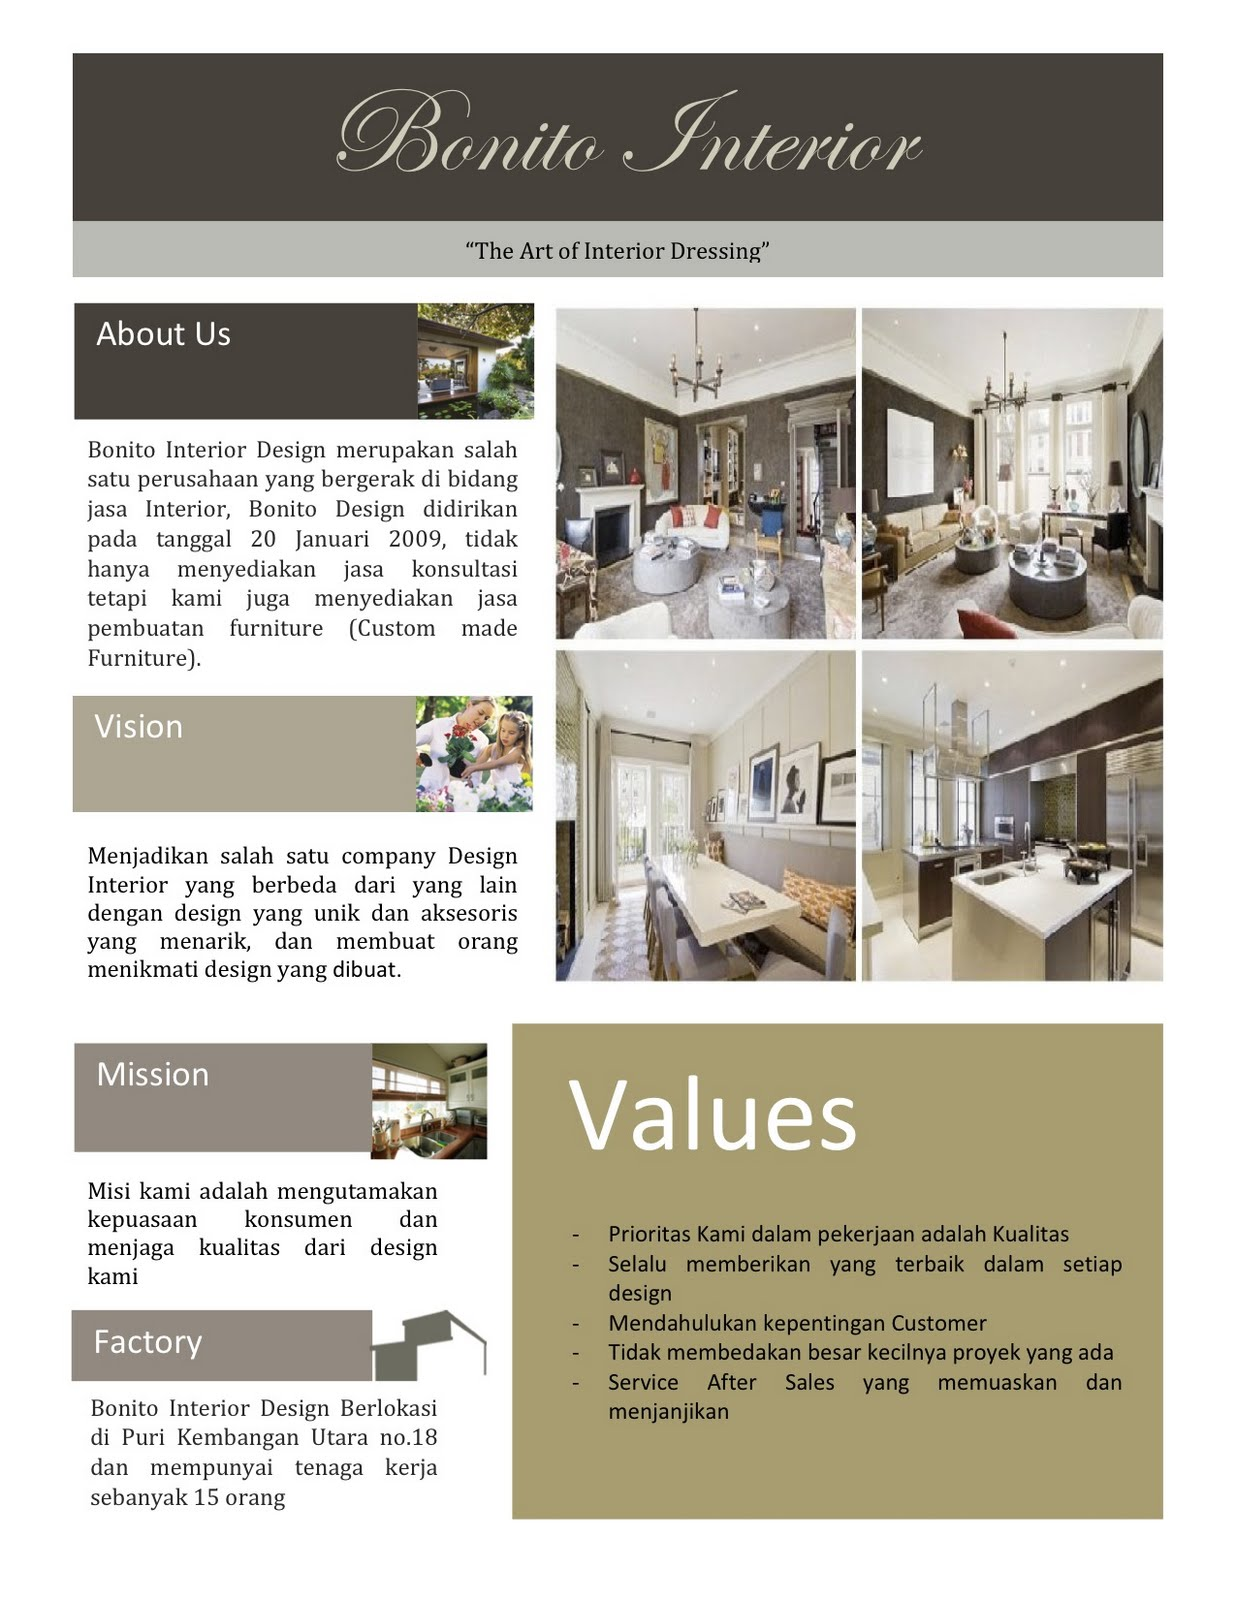 Interior Design Company Profiles Sample